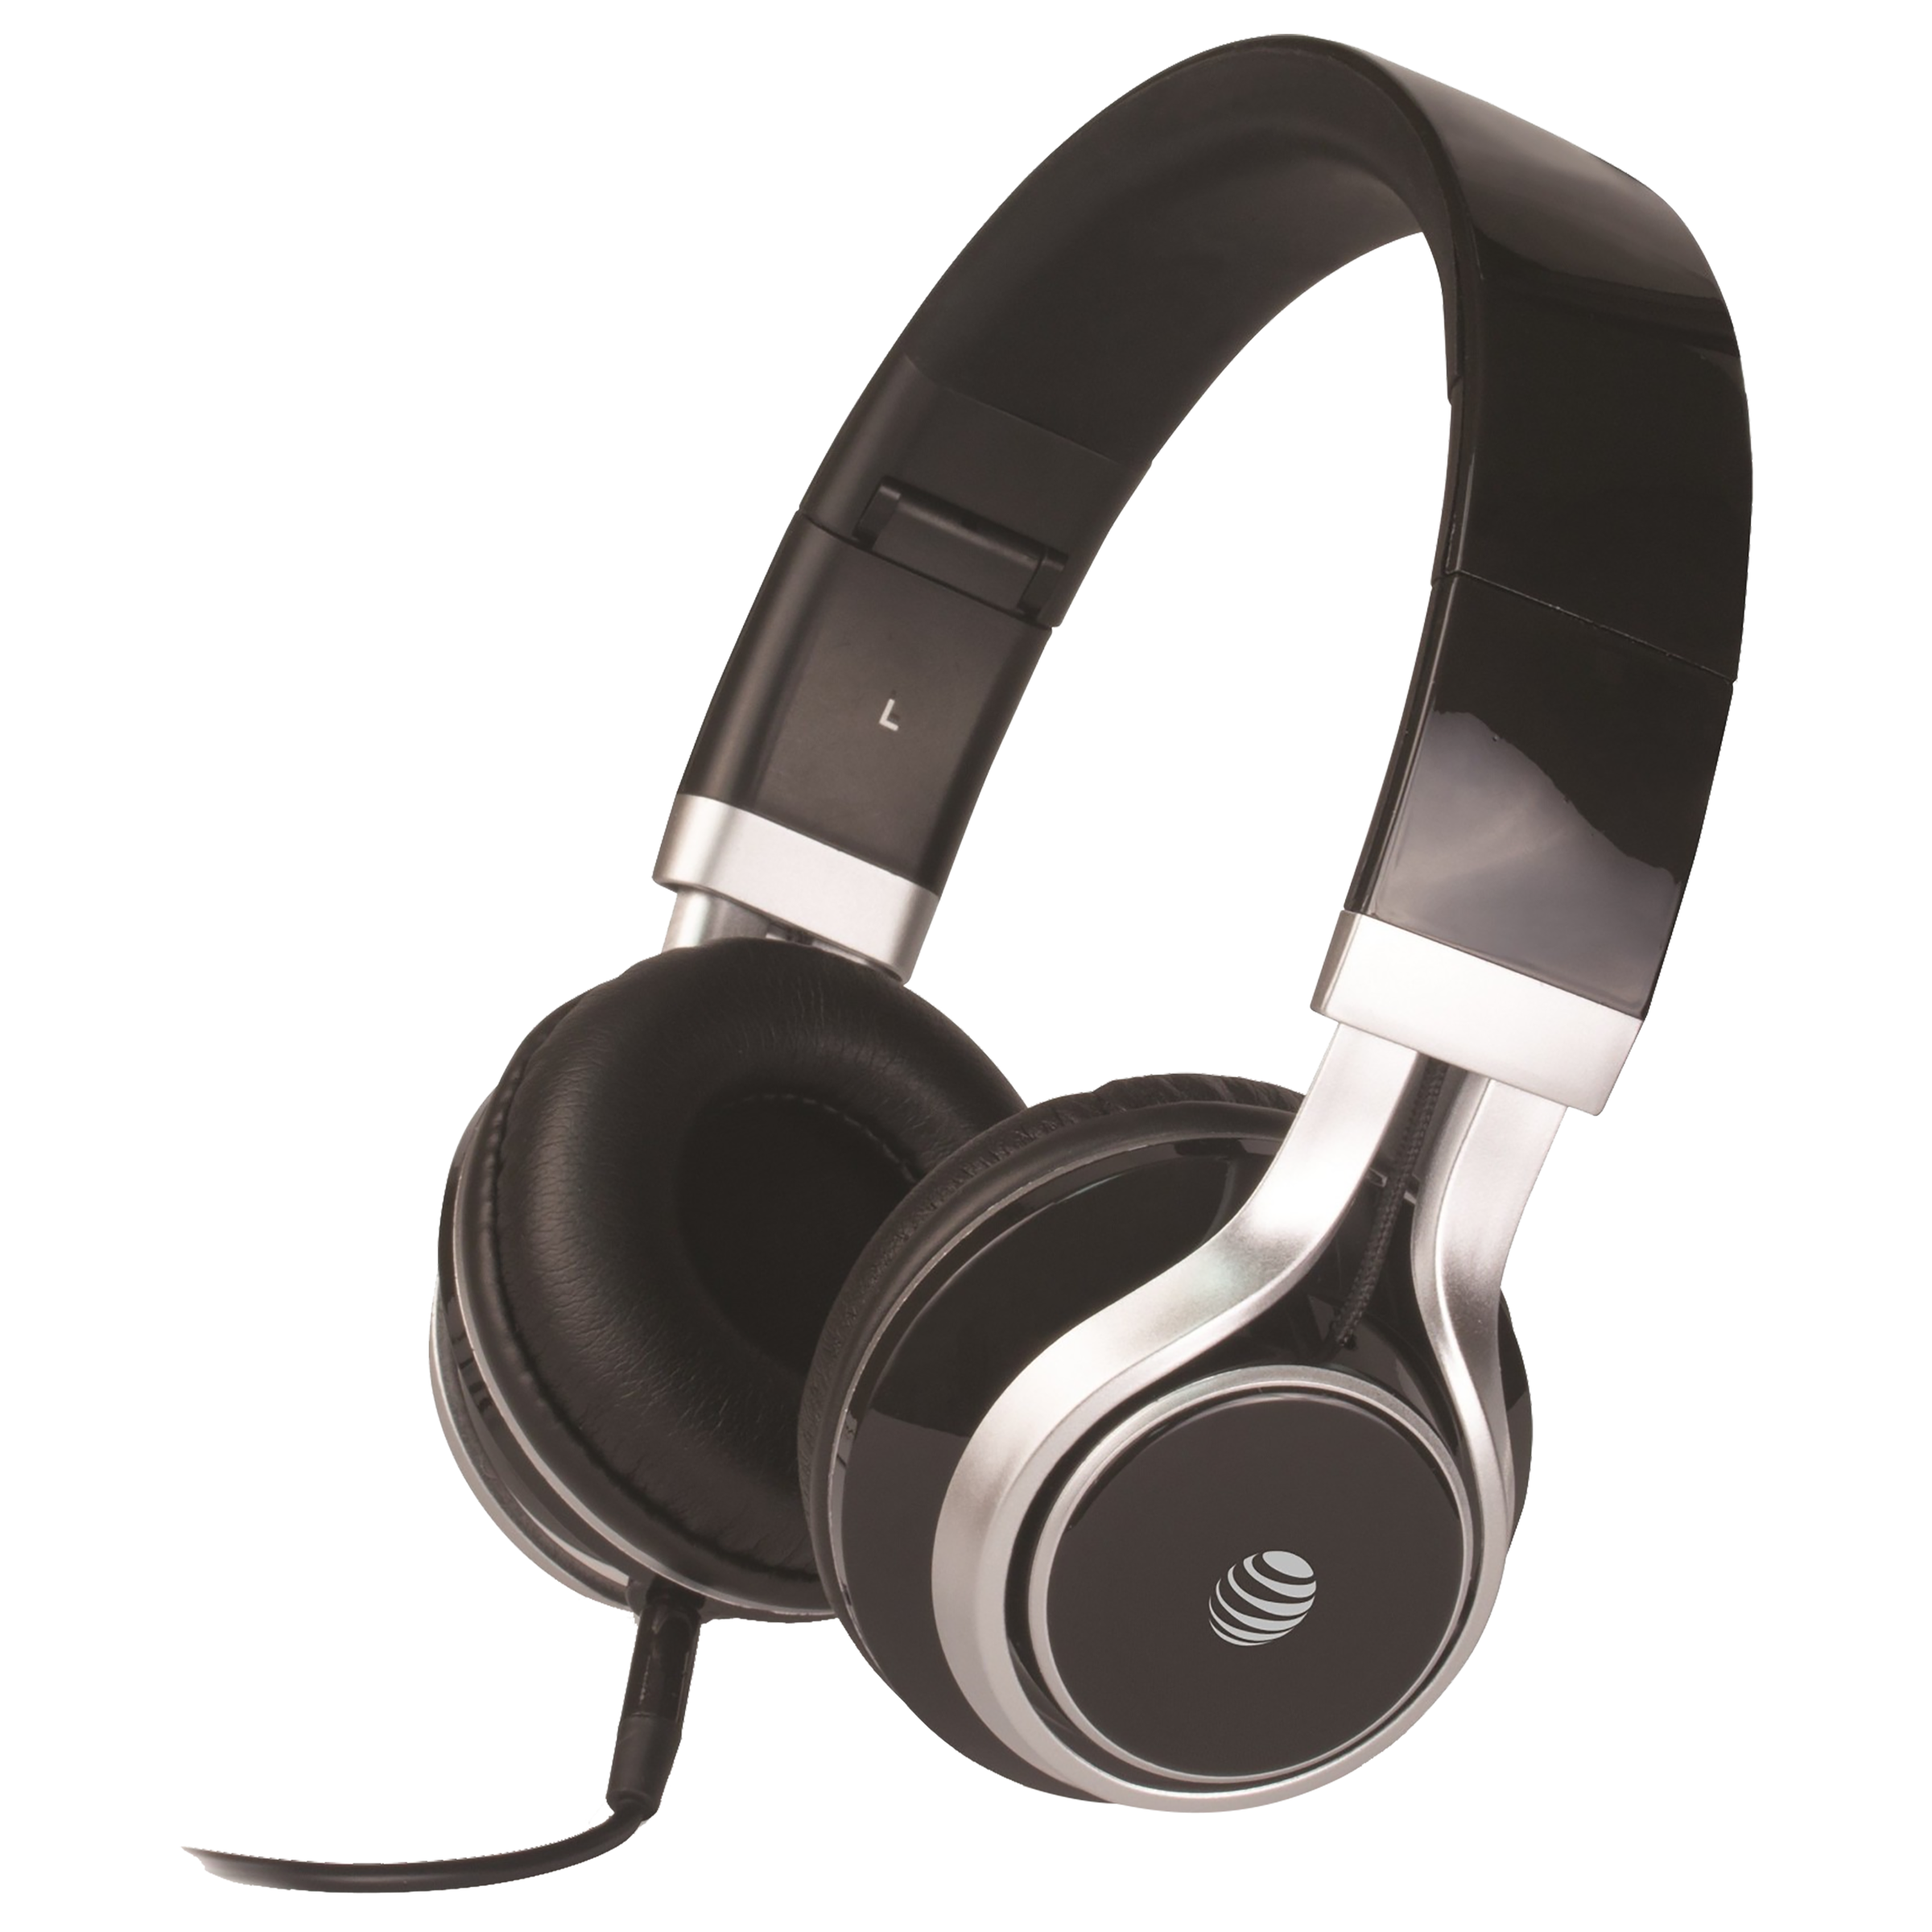 AT&T Over-Ear Noise Isolation Wired Headphone with Mic (Stereo Quality Sound, HPM10-BLU, Black)_1